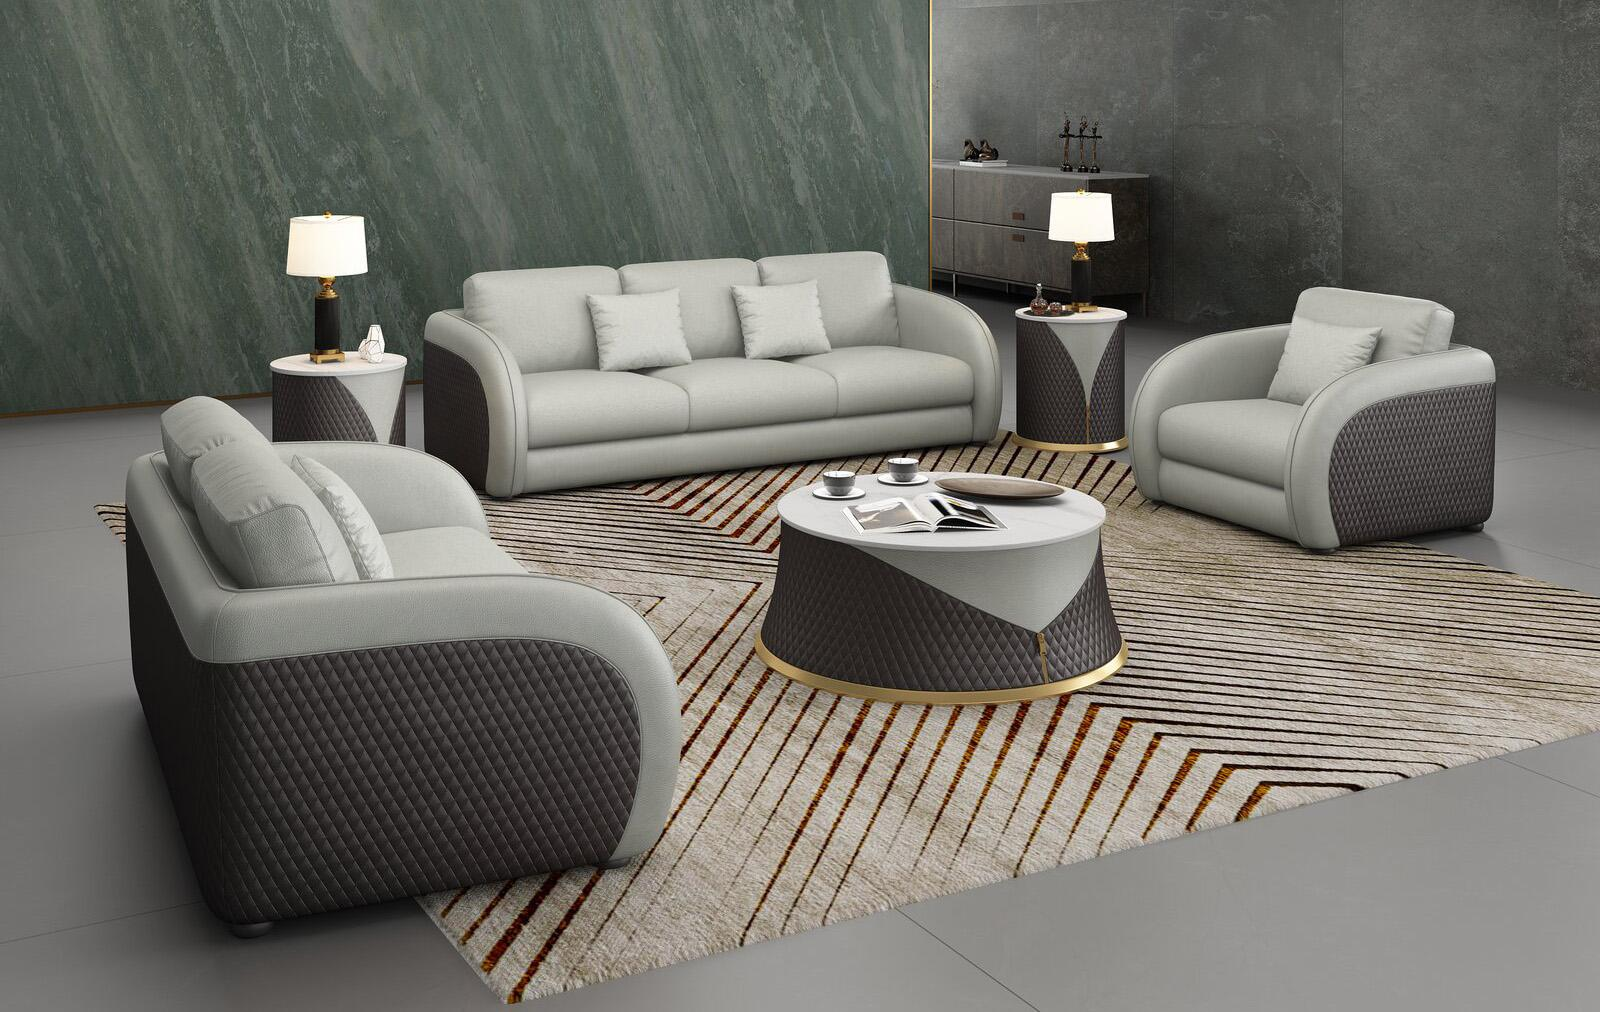 Contemporary, Modern Chocolate, Light Grey Leather and Wood, Genuine leather, Solid Hardwood Sofa Set 3 pcs NOIR  by European Furniture